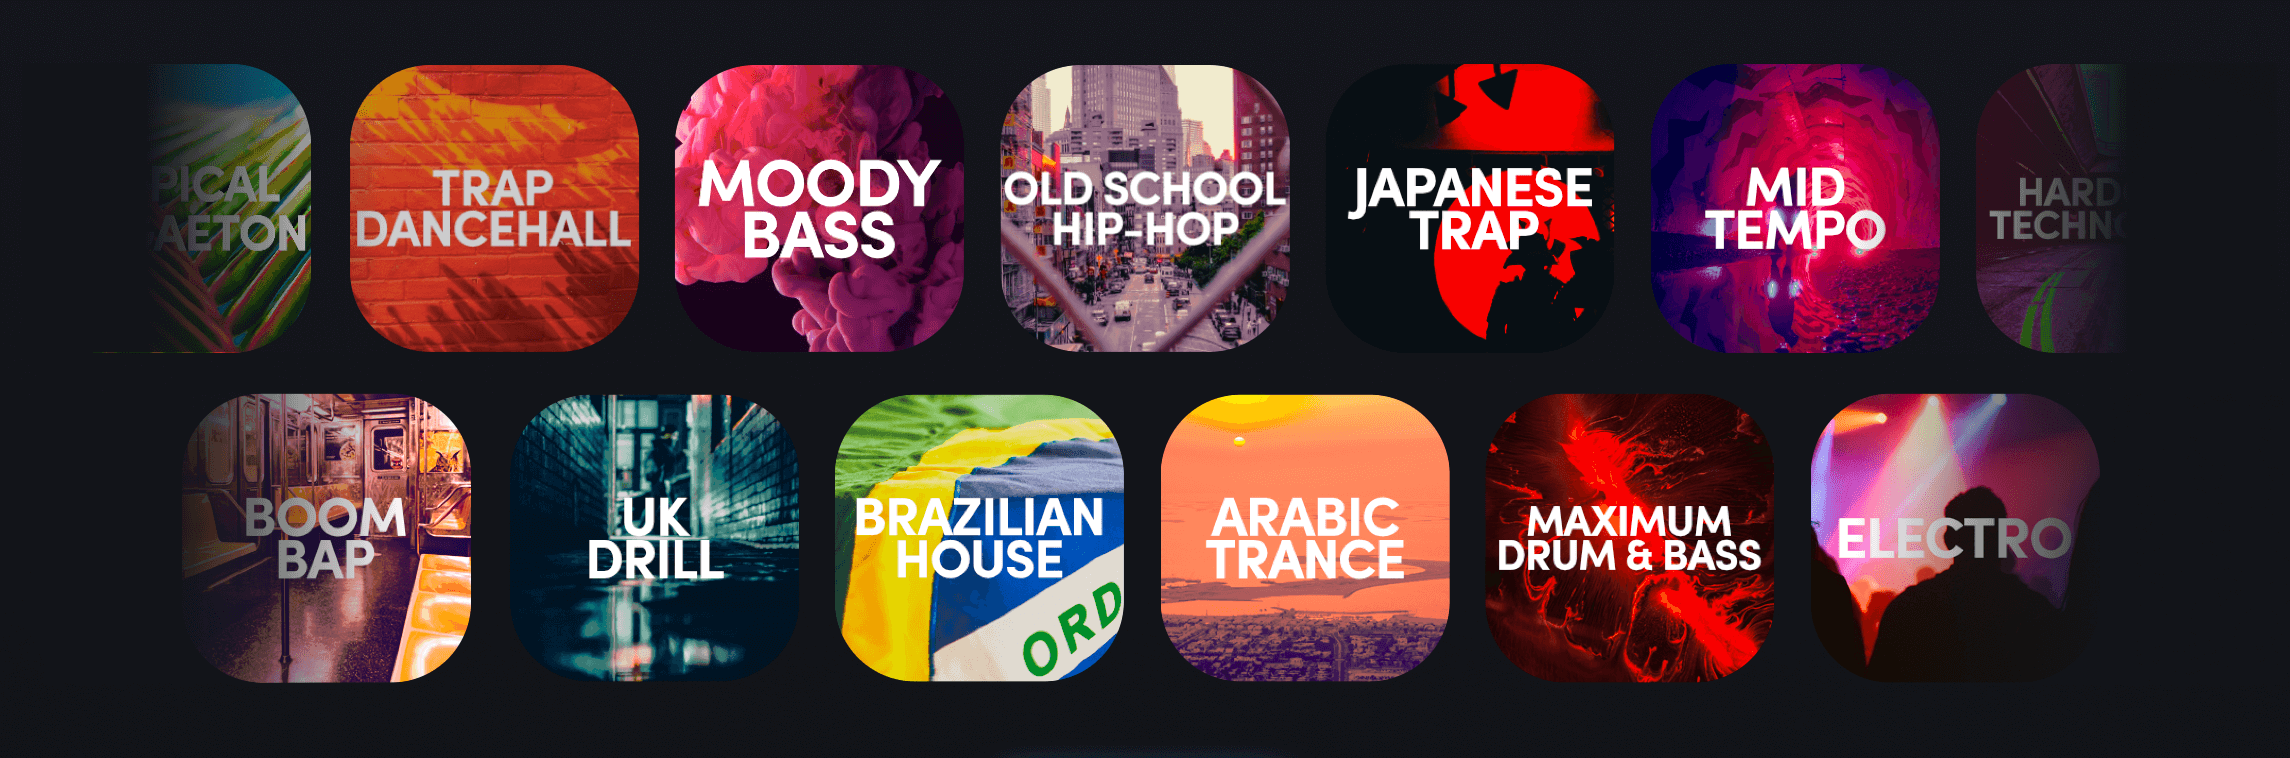 Showcase of packs from different genres available in Remixlive (Hip-Hop, Trap, Drum & Bass, Electro, Trance,etc)